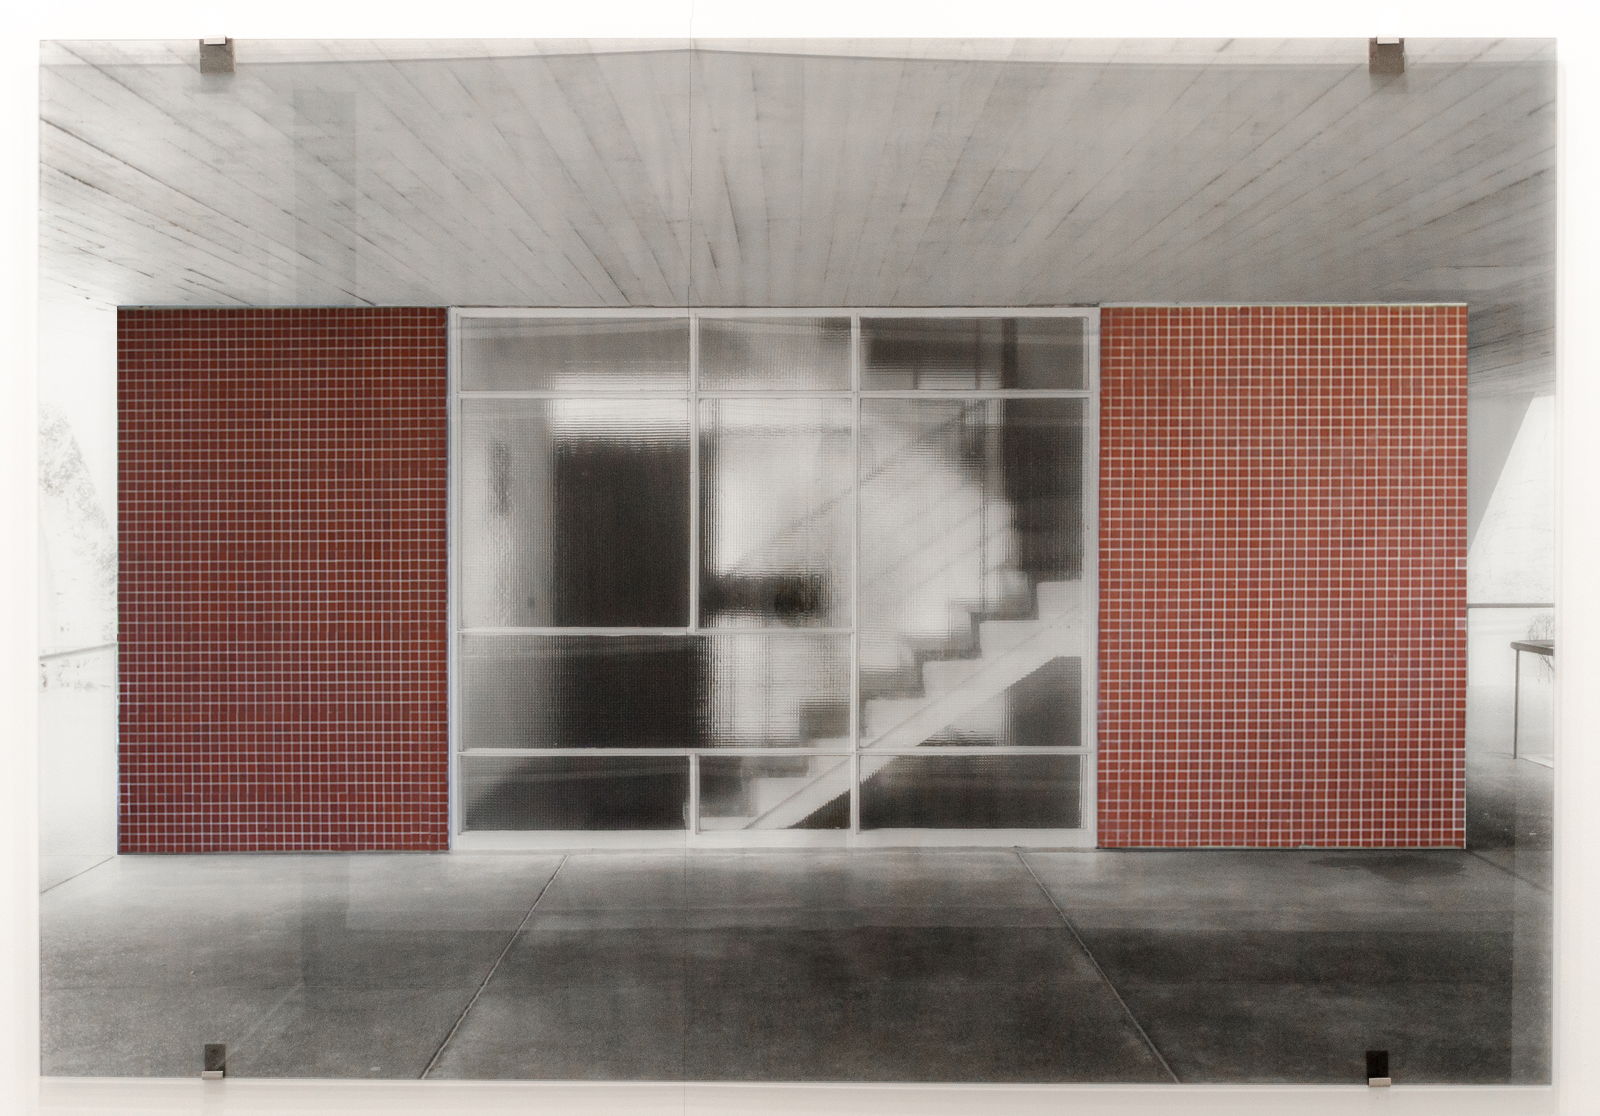 Niemeyer with red tiles , 2017 single panel silkscreen print on glass 59 x 85-7/8 inches 150 x 218 cm Edition of 3